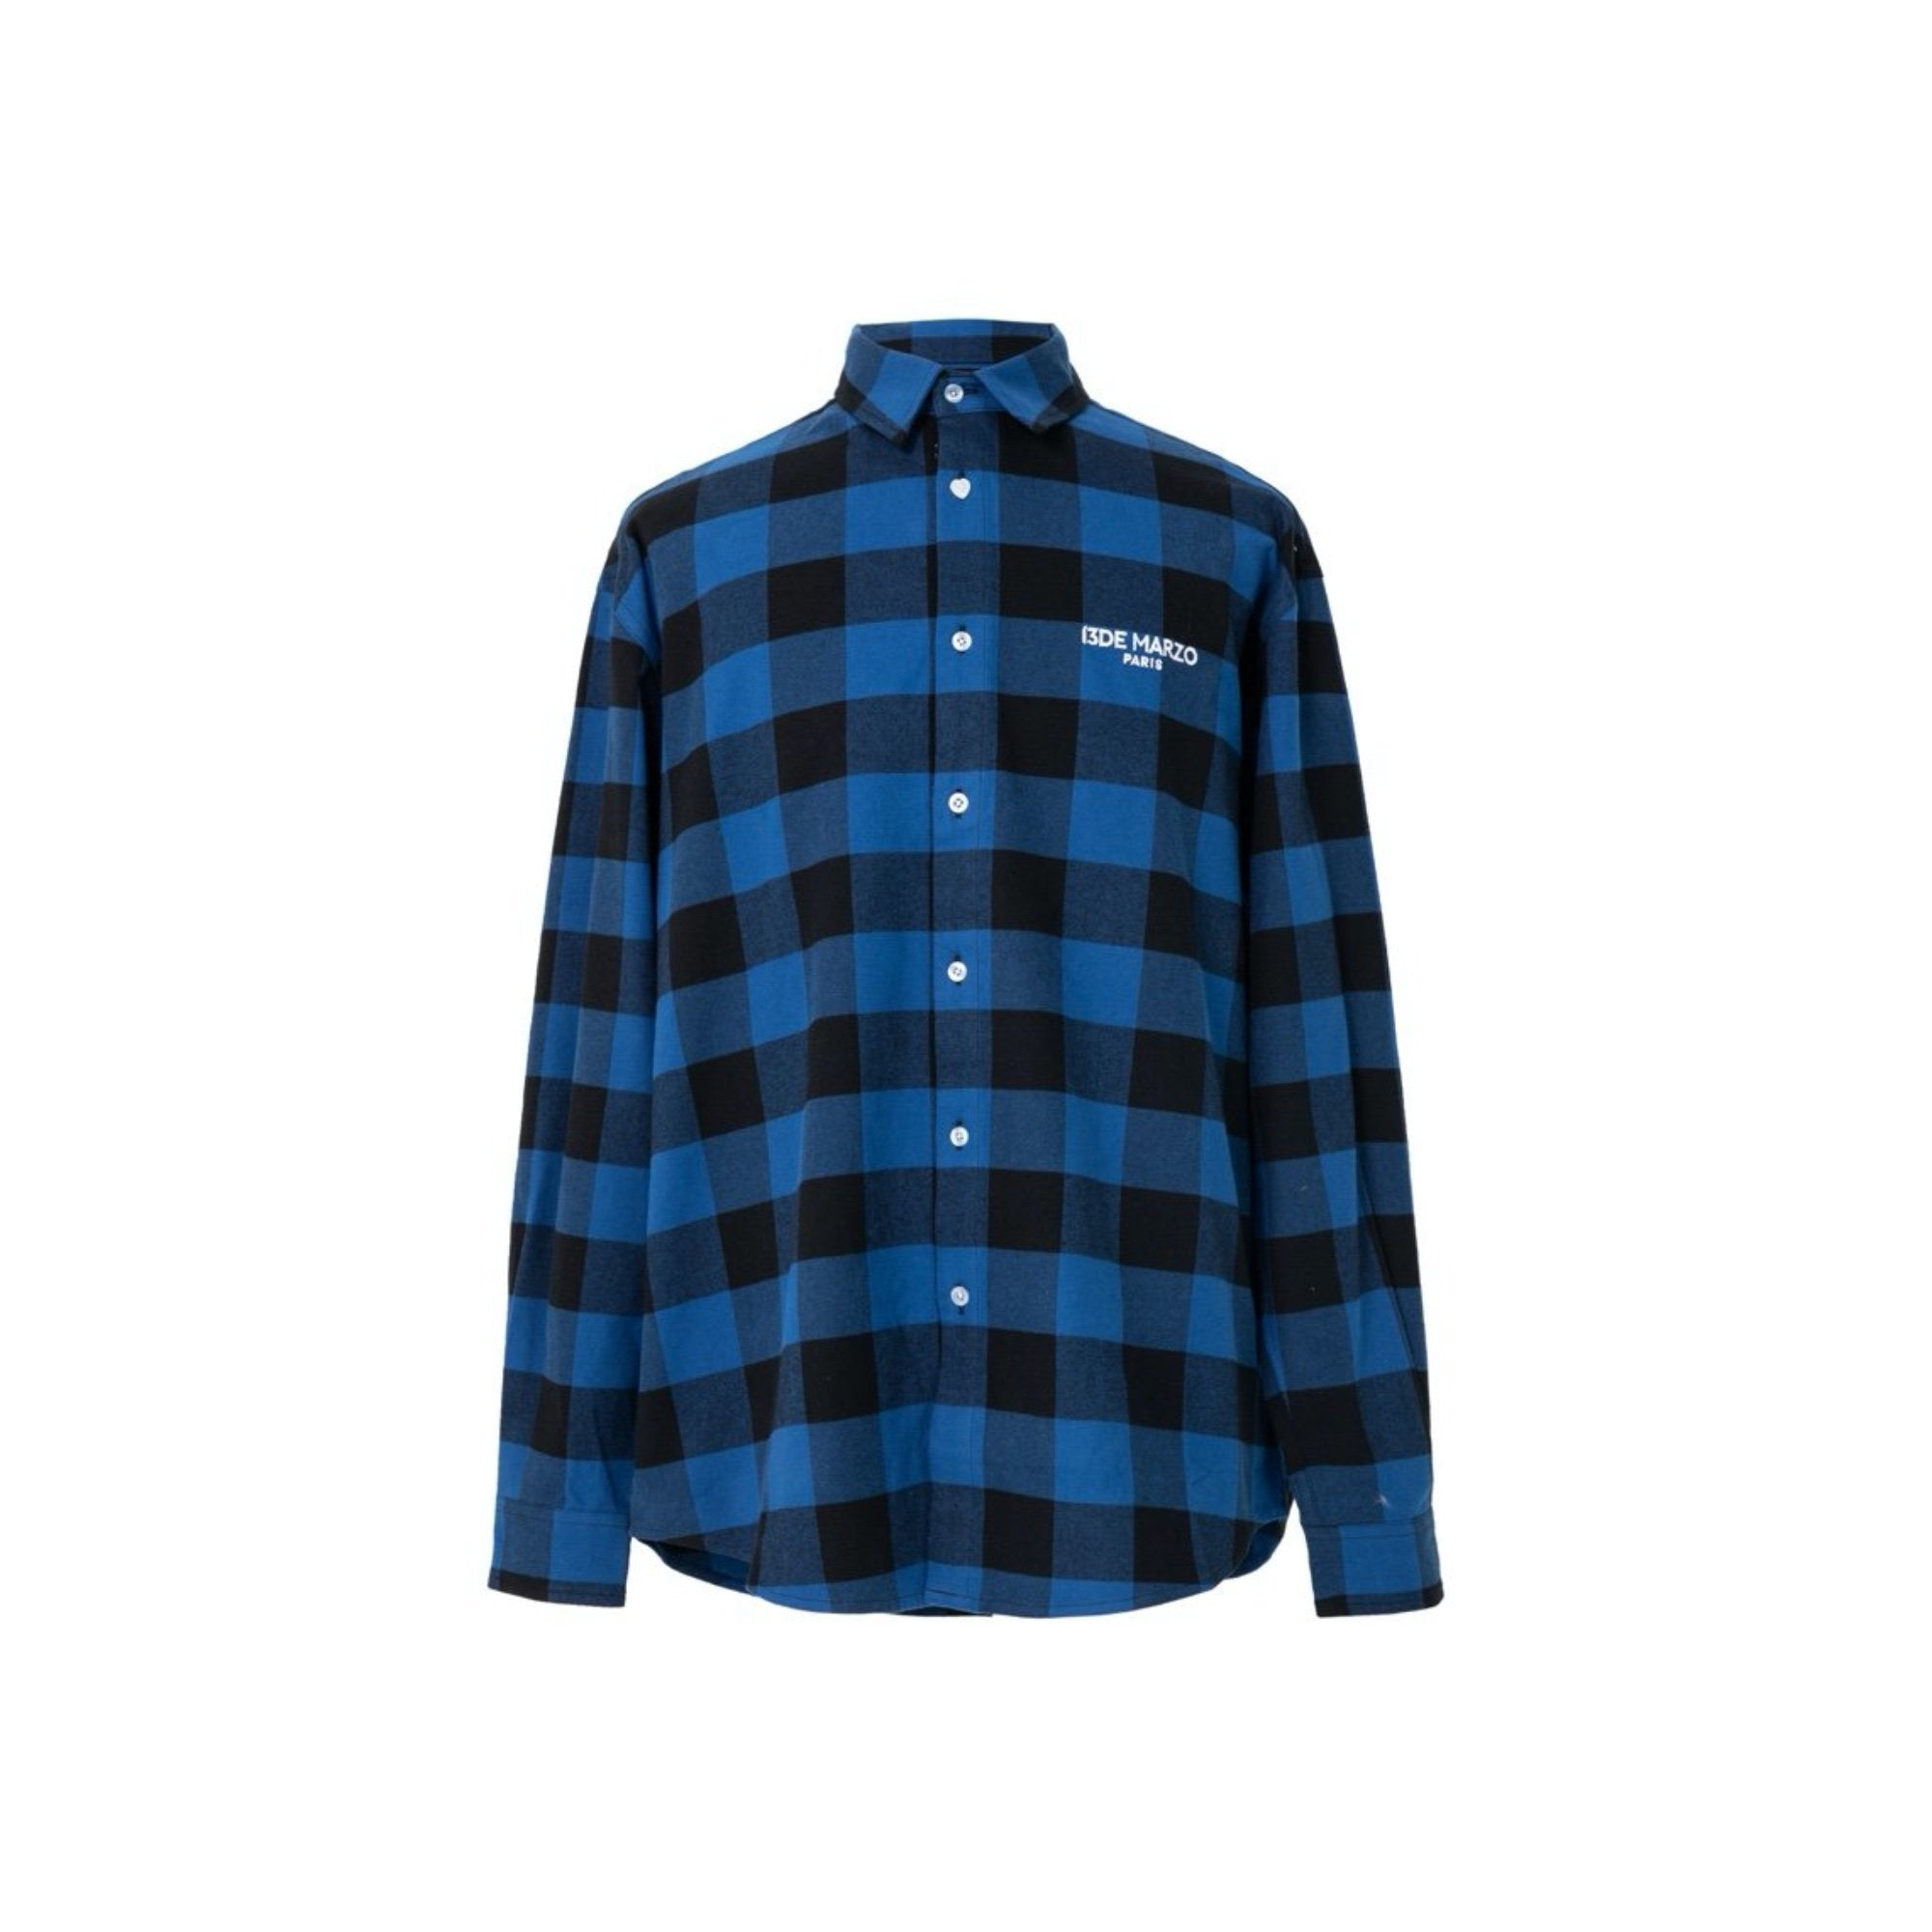 13 DE MARZO Teddy Bear Plaid Shirt Blue | MADA IN CHINA